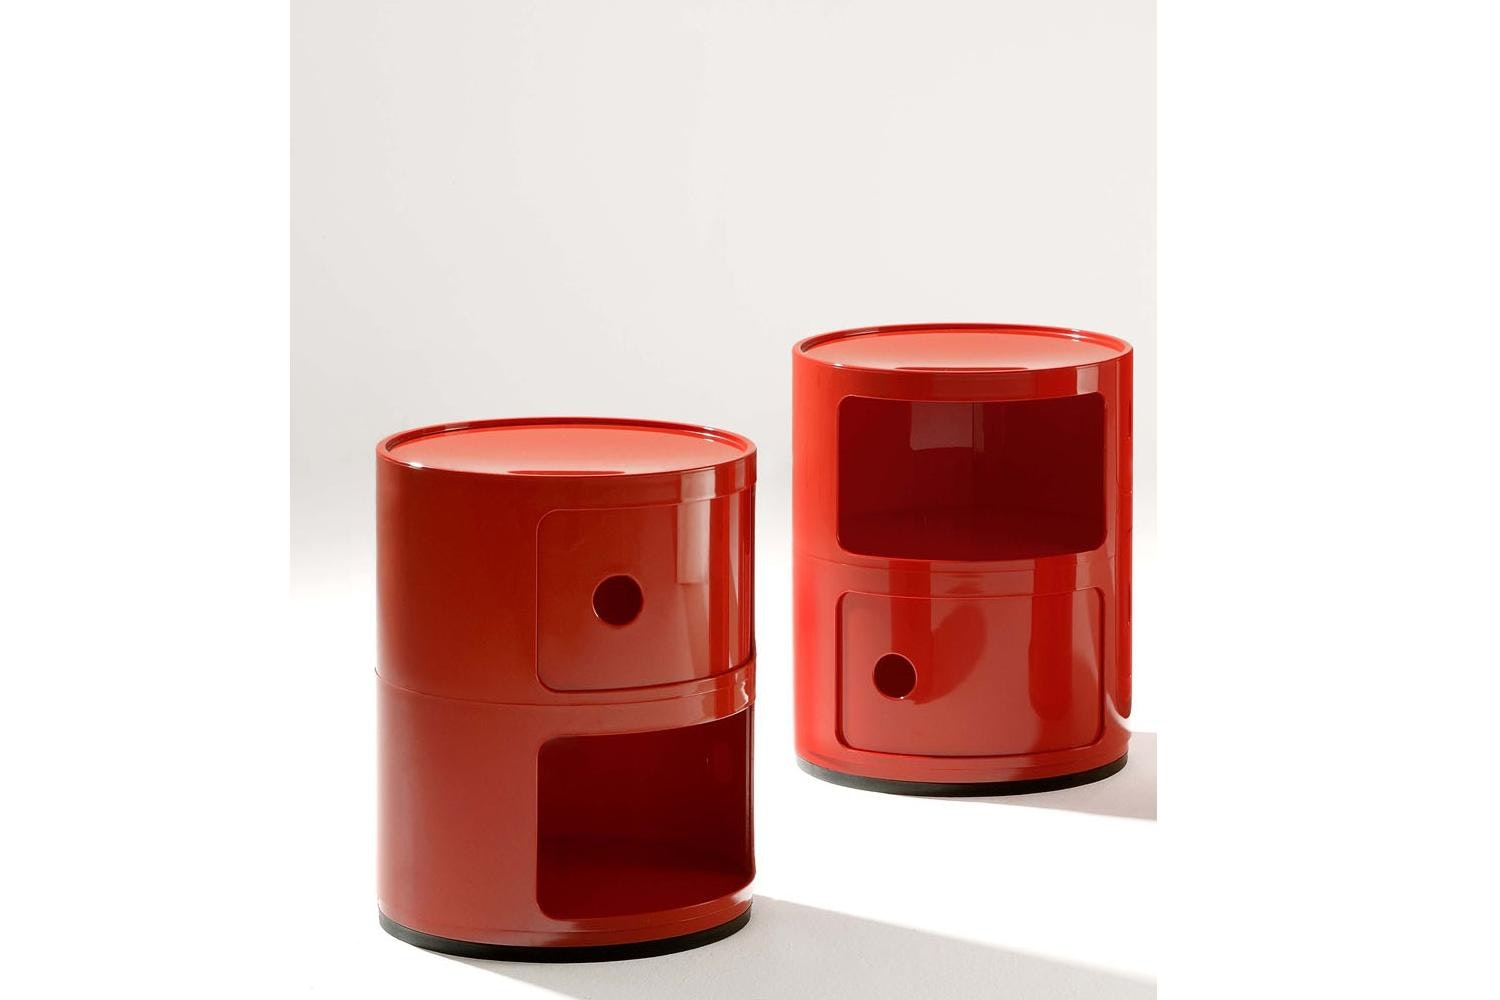 Componibili 2 Round Elements by Anna Castelli Ferrieri for Kartell